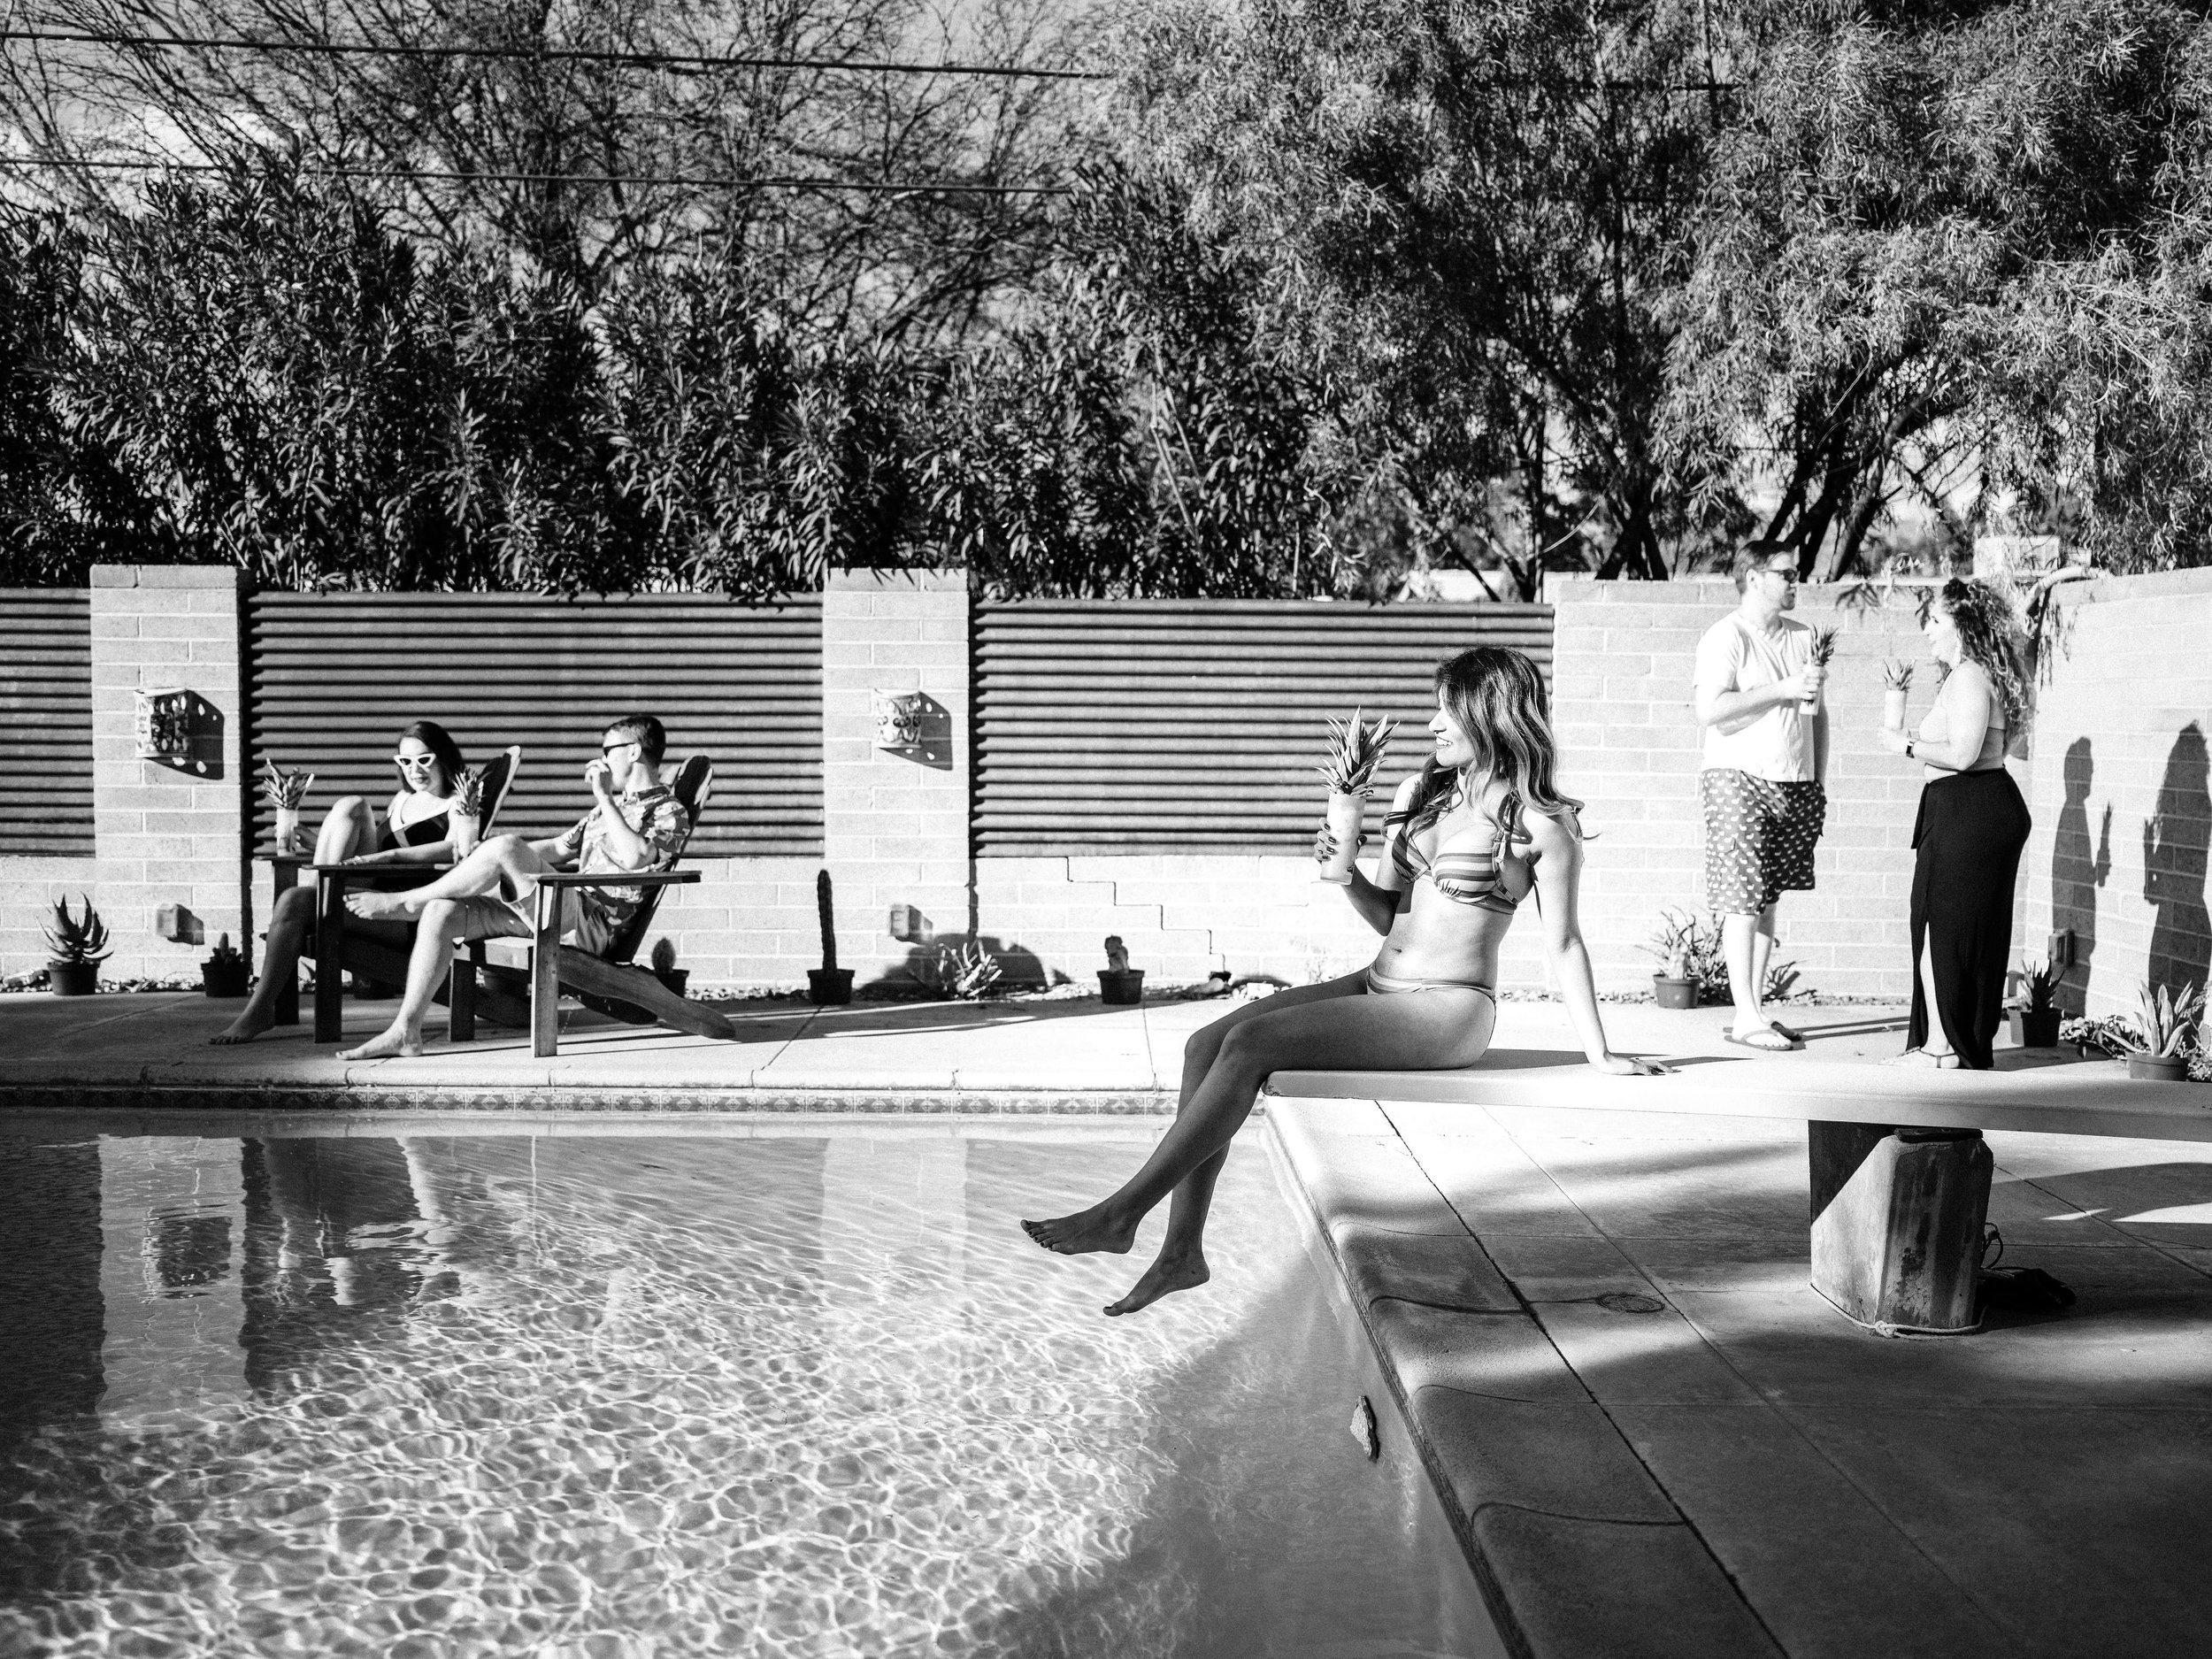 Andy-Shepard-Photography-Tucson-Pool-Party-52.jpg